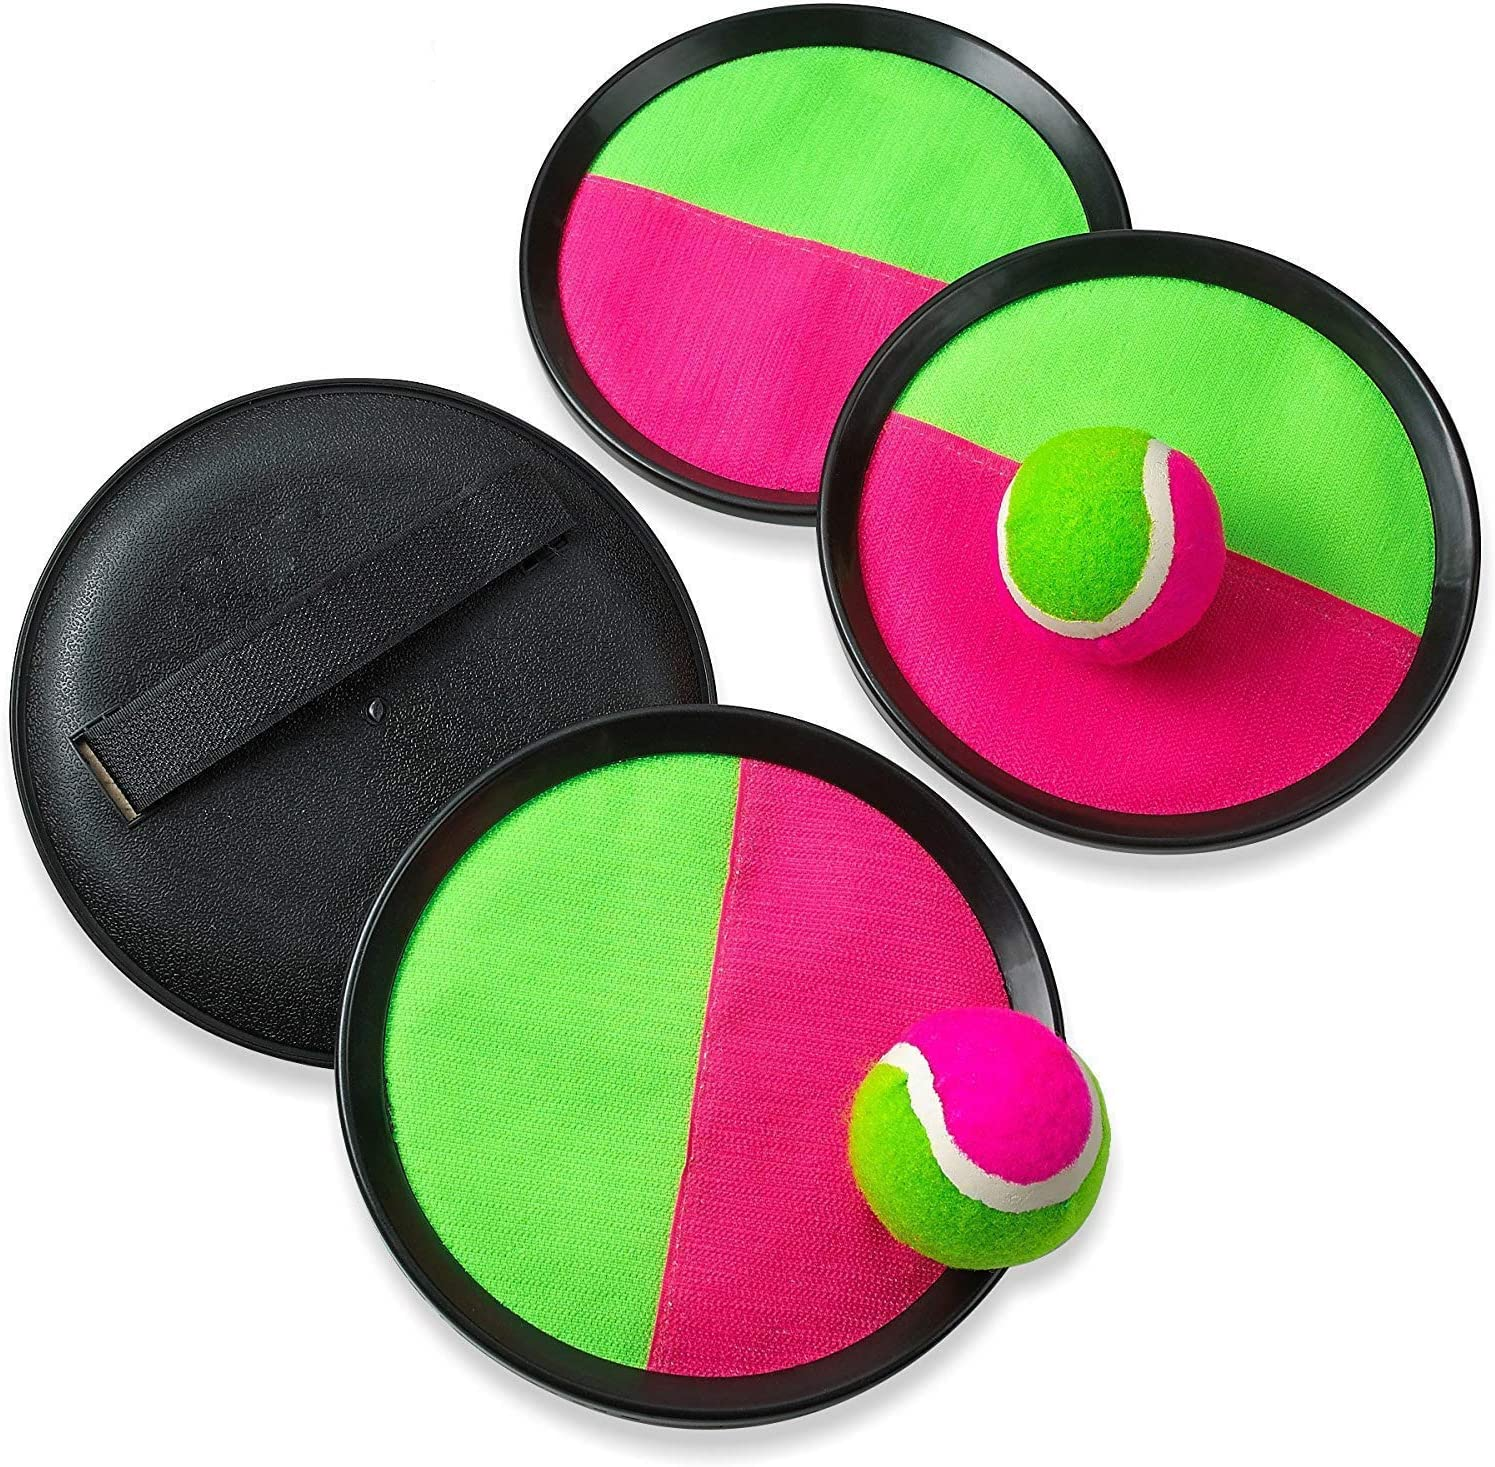 2 Balls and 1 Storage Bag Perfect Outdoor Toy Gift for Kids Upgraded Version Ayeboovi Toss and Catch Ball Game Velcro Ball Catch Game Paddle Game Set with 2 Paddles